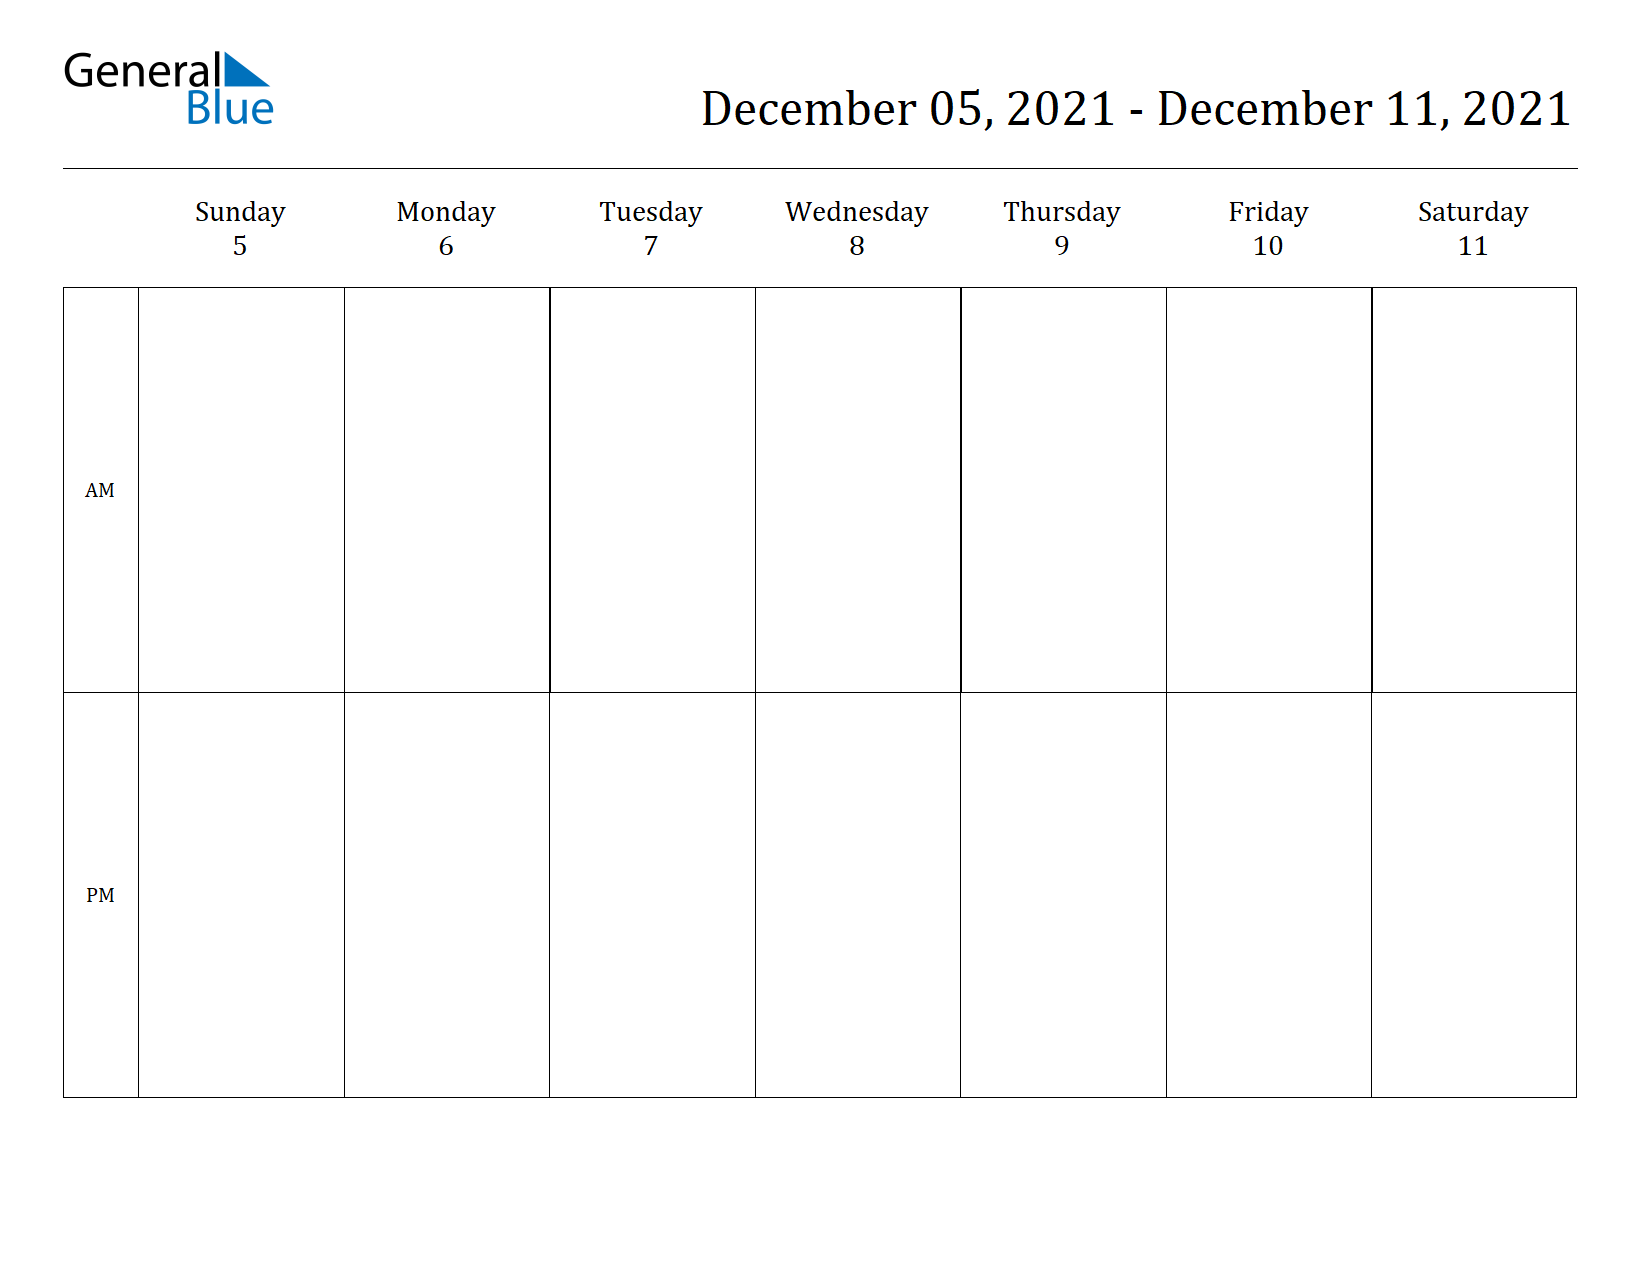 Weekly Calendar for Dec 05, 2021 to Dec 11, 2021